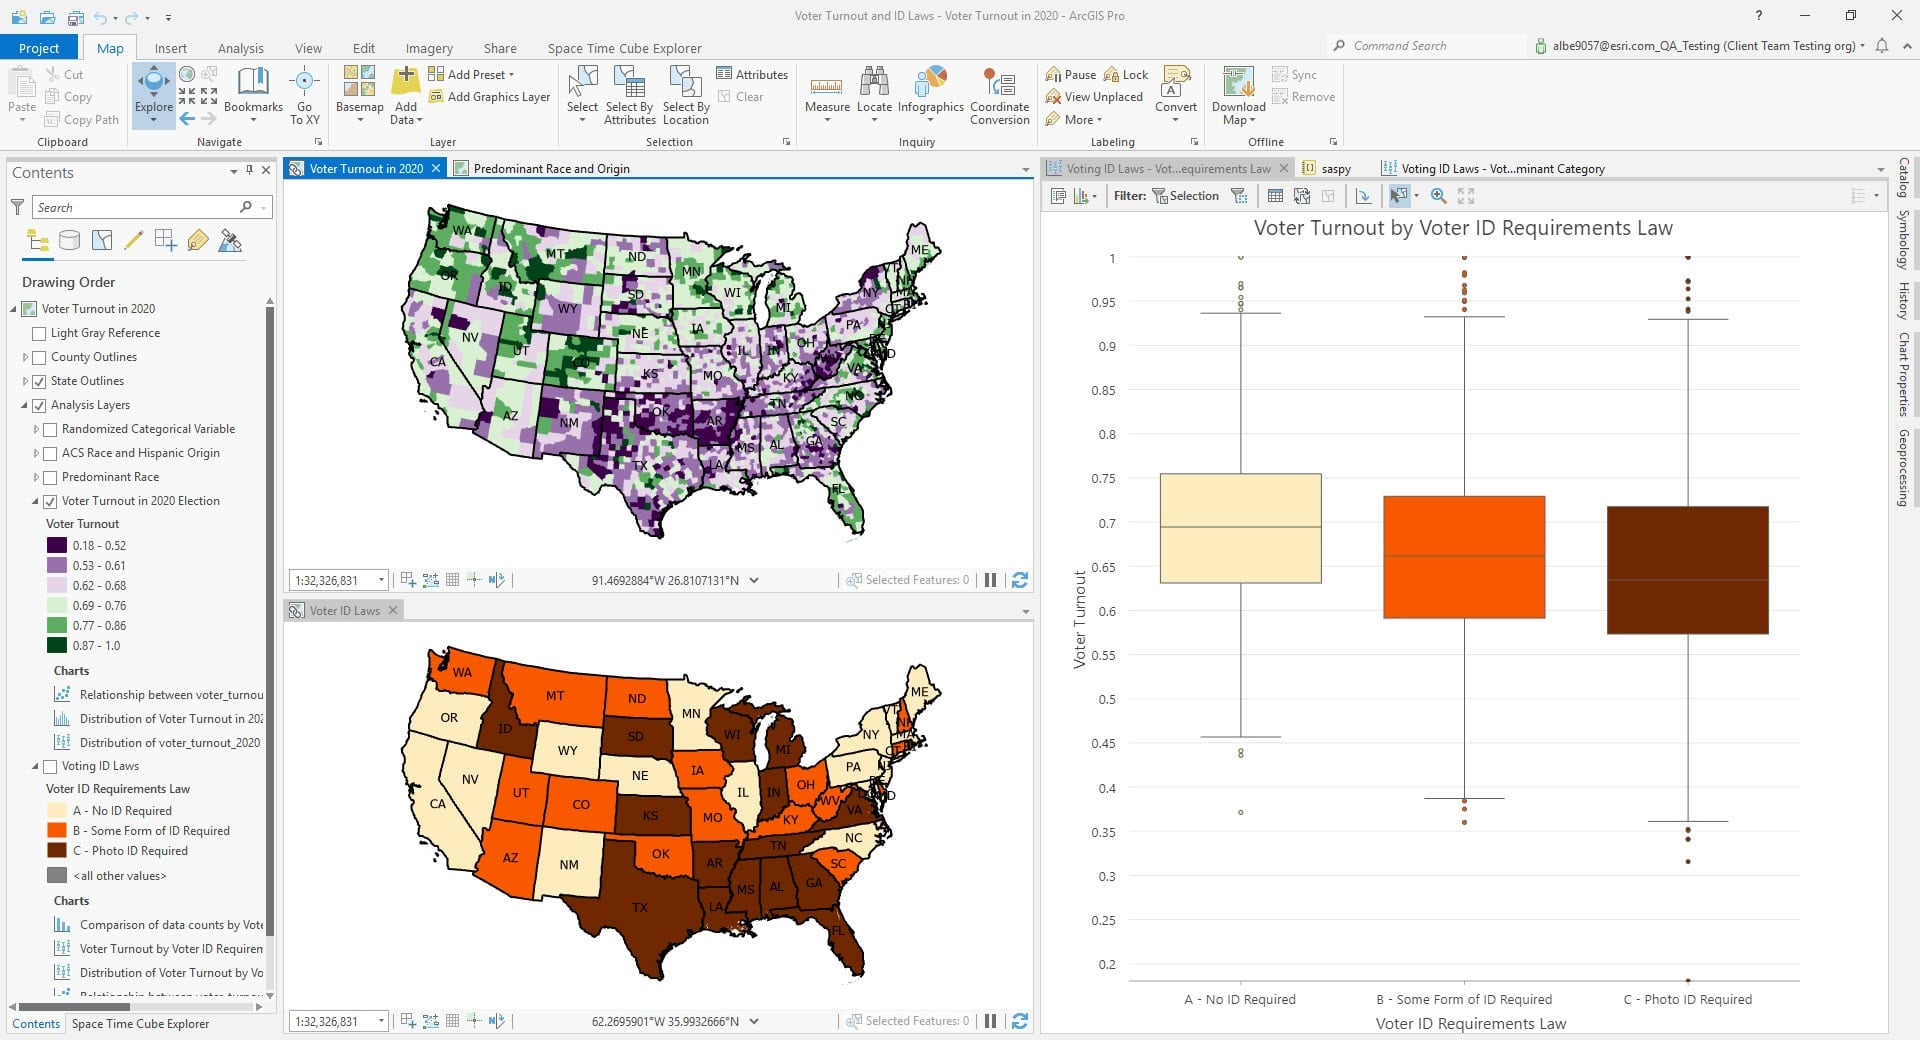 ArcGIS Pro and maps of voter turnout and voter ID laws